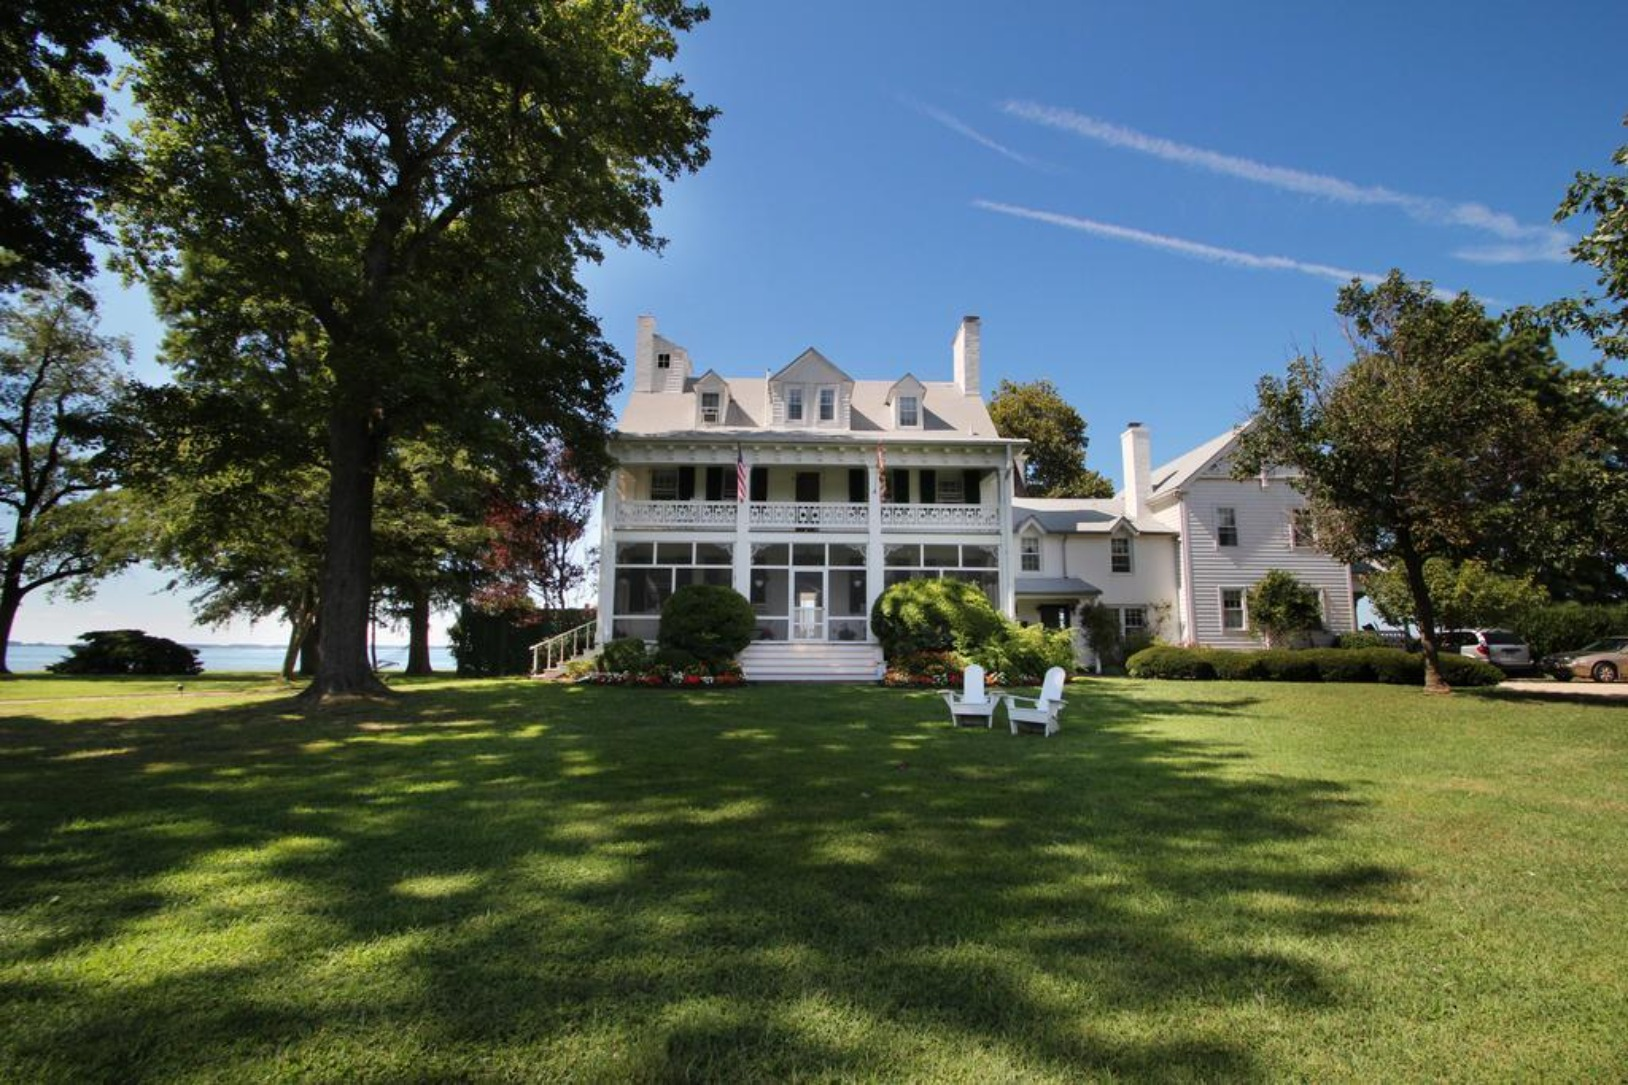 A large lawn in front of a house at Wades Point Inn.